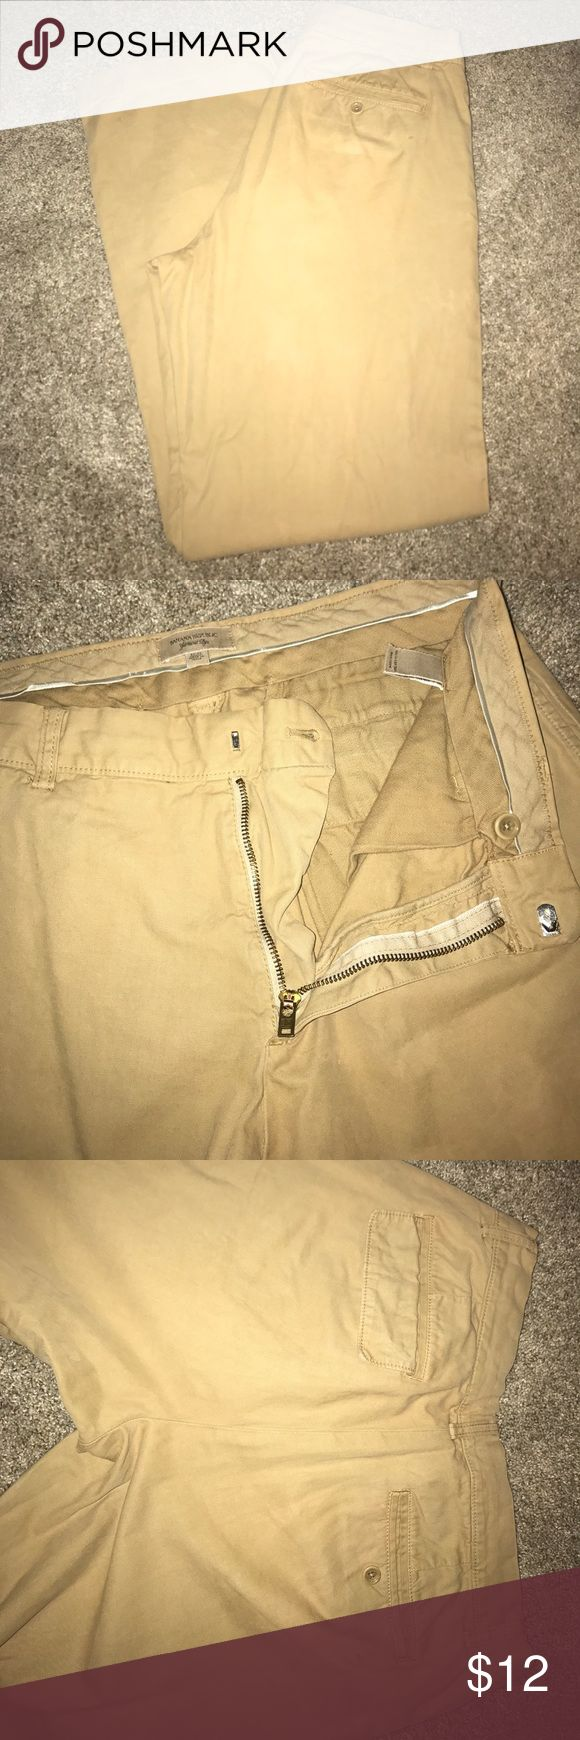 Men's banana republic khaki pants Gently used men's khaki pants from banana republic, sz 32x32, one small stain at the bottom as pictured, otherwise in good shape.I have never tried to remove it, accepting offers 😁 Banana Republic Pants Chinos & Khakis